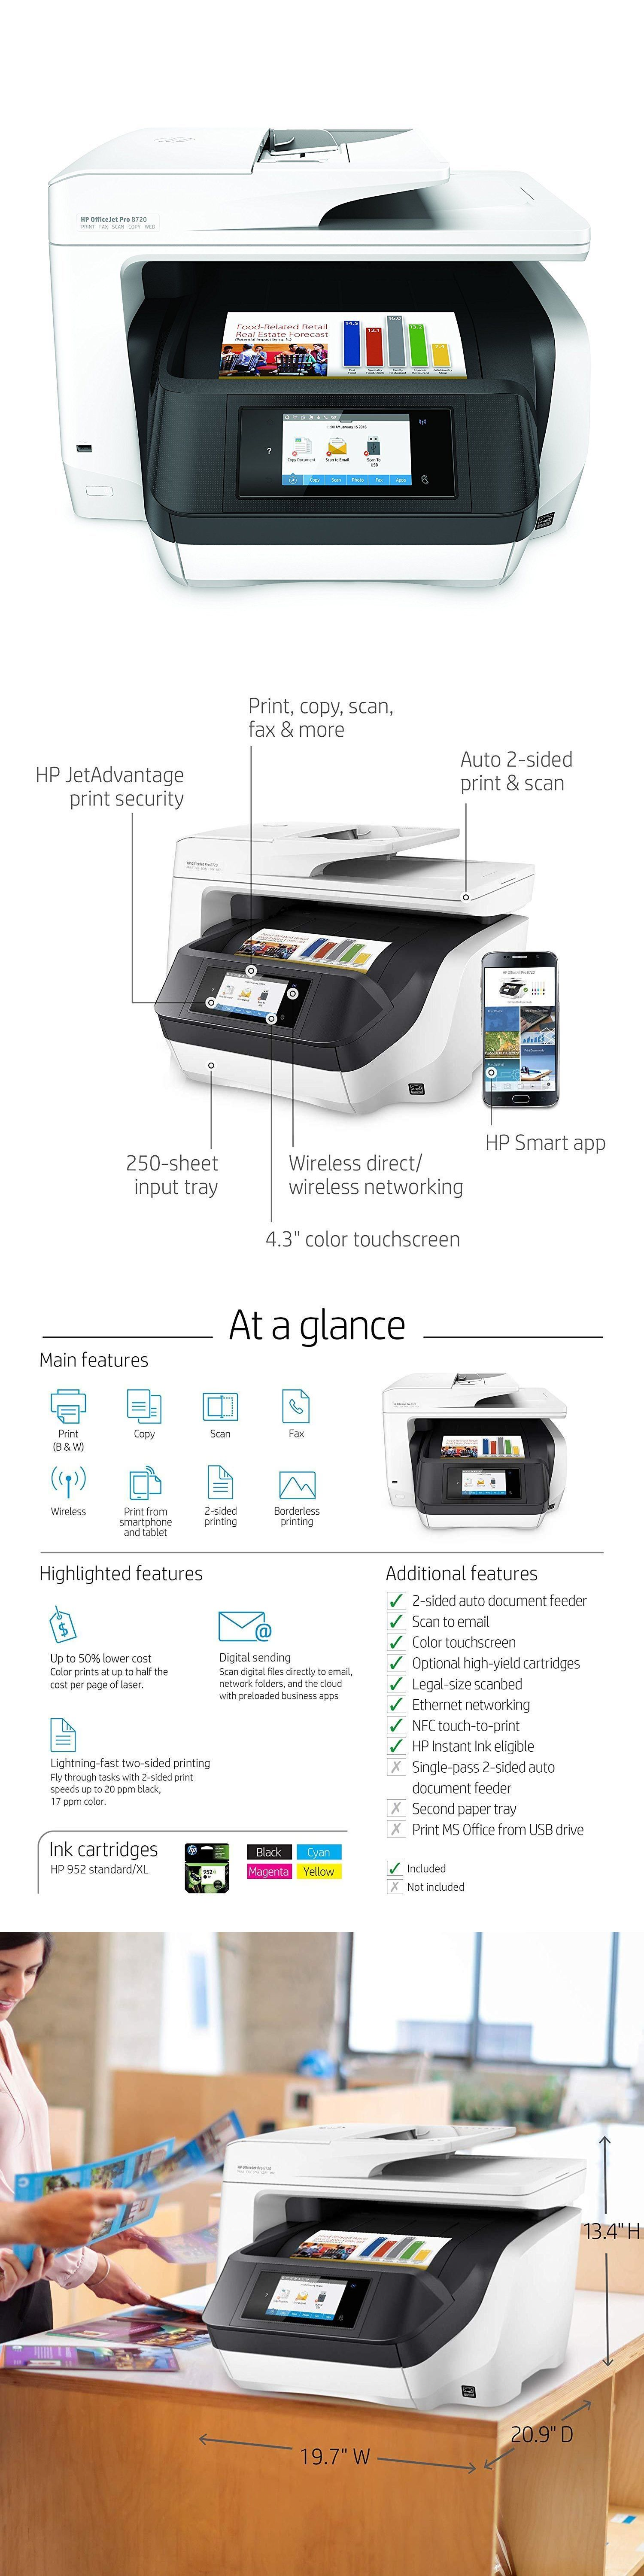 Printers 1245: Hp Officejet Pro 8720 All-In-One Color Wireless